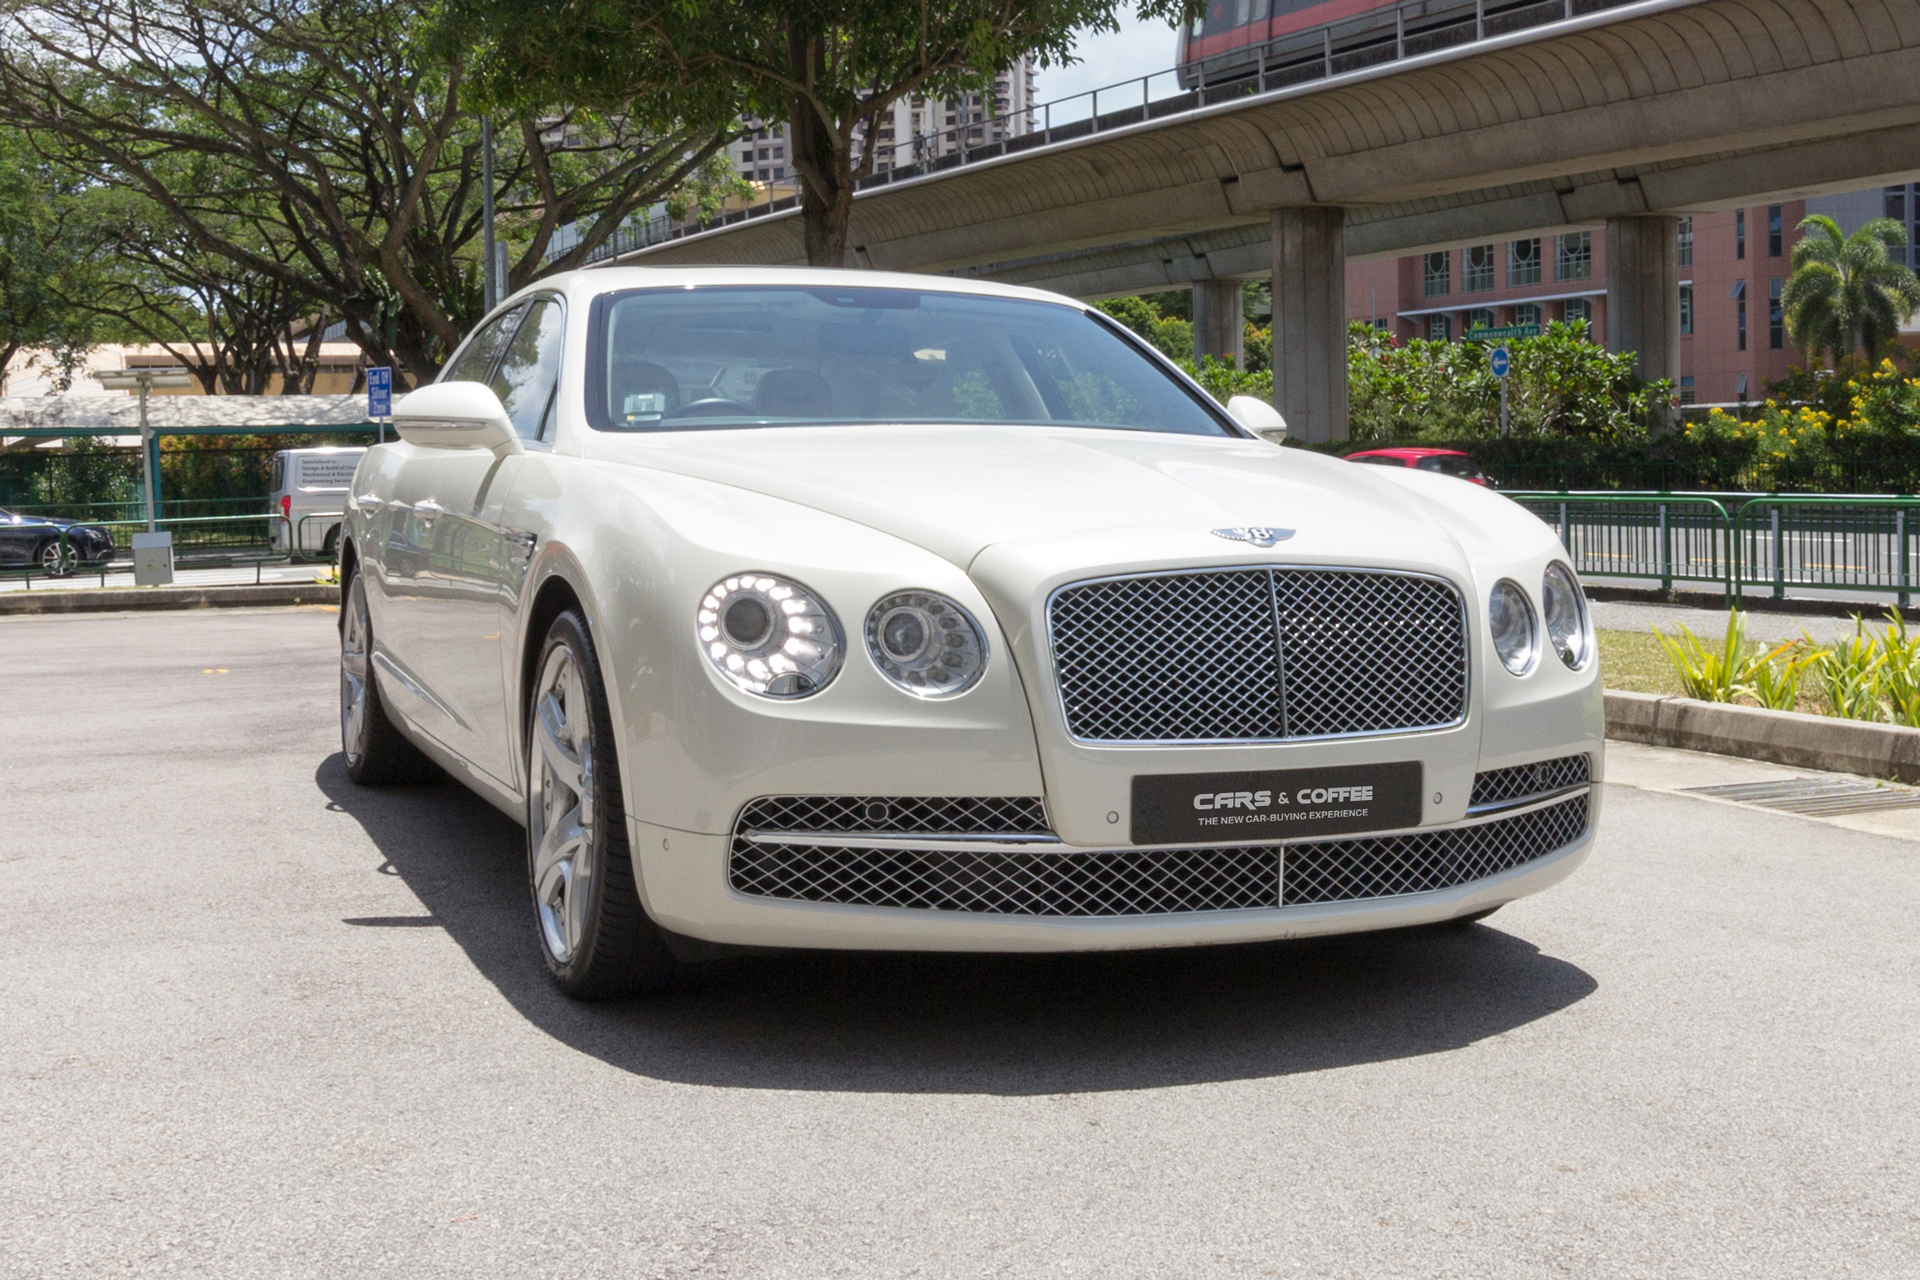 Certified Pre-Owned Bentley Continental Flying Spur 6.0A | Cars and Coffee Singapore